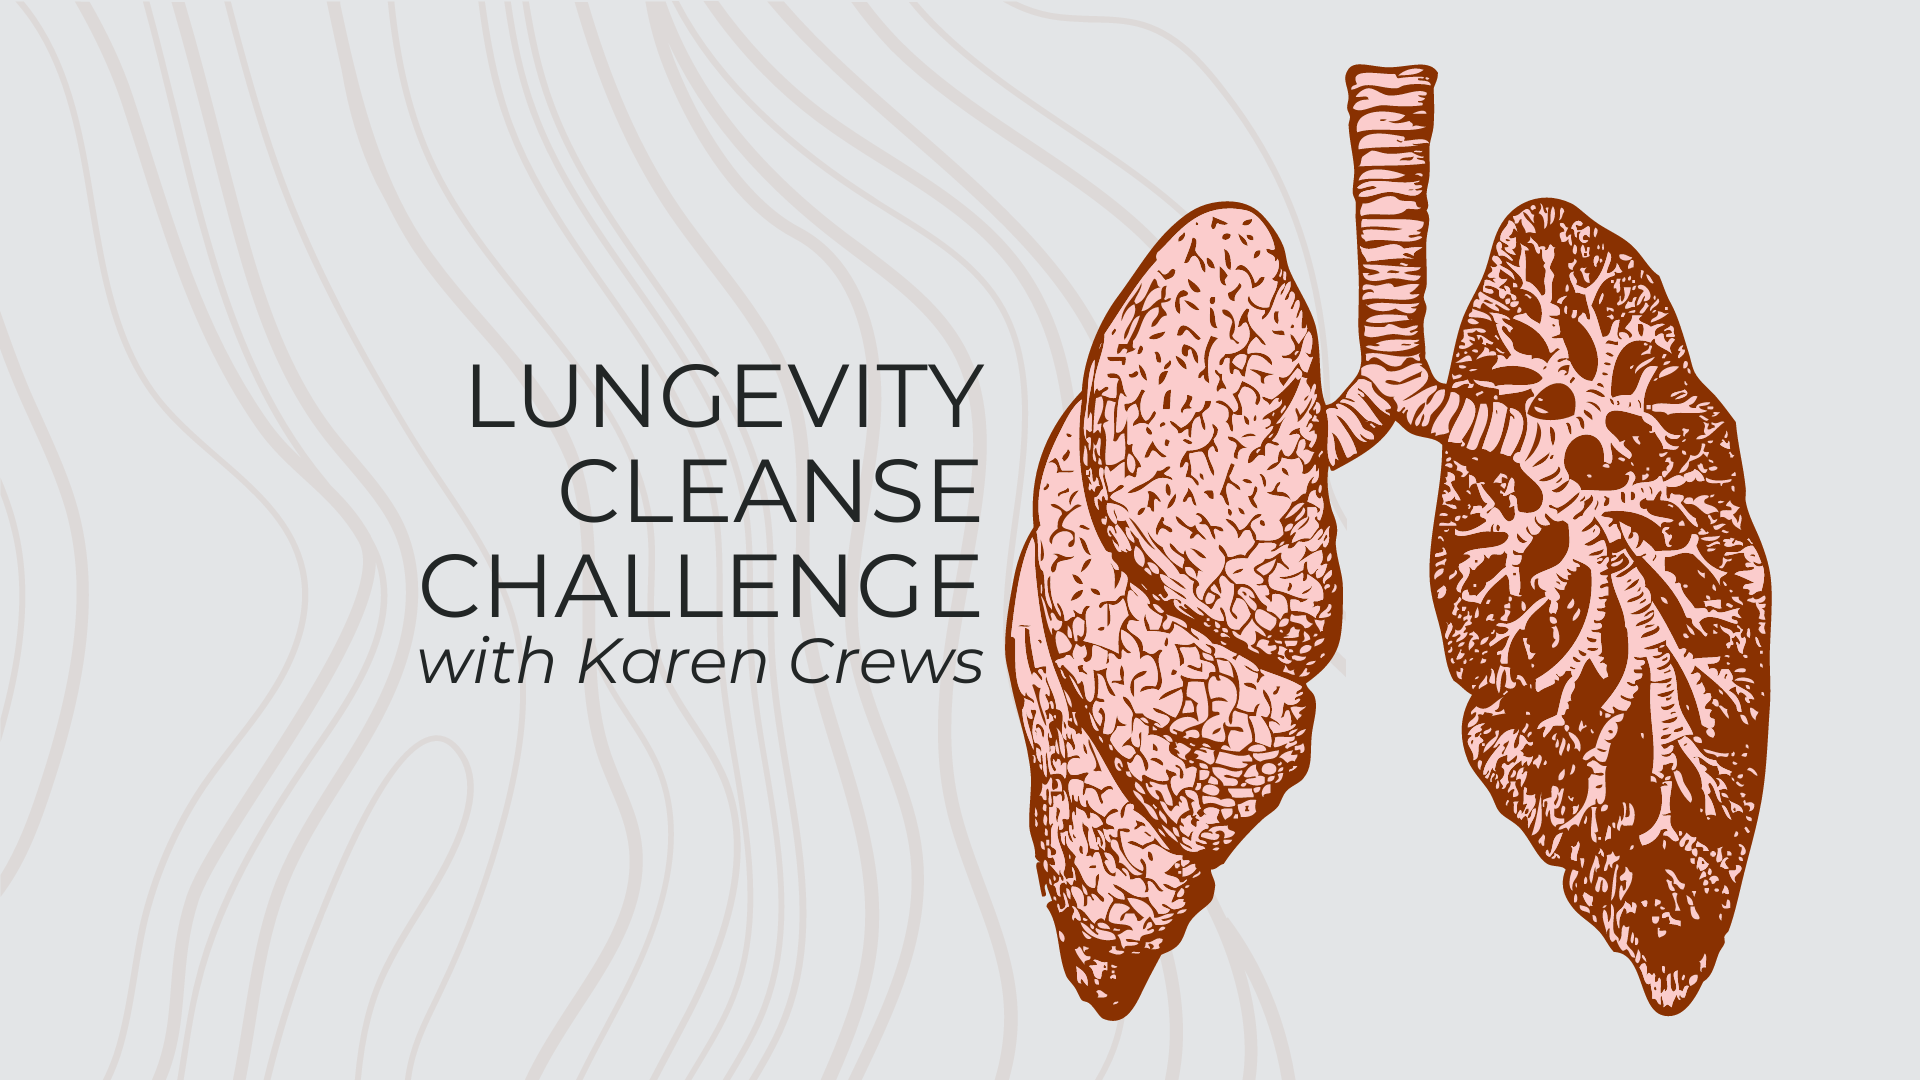 Lungevity Cleanse Challenge